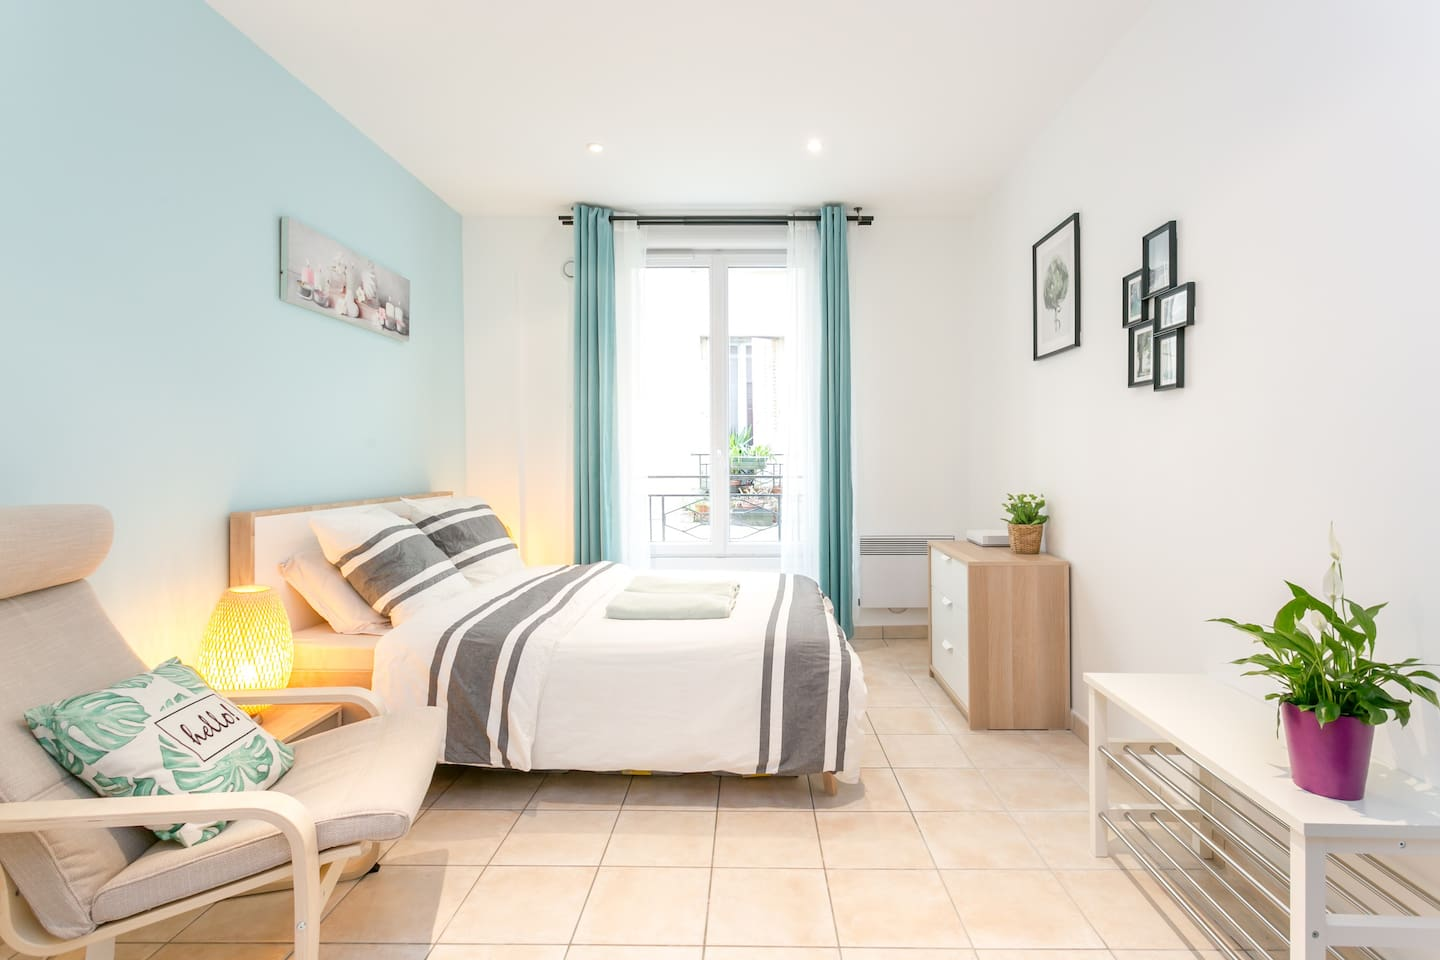 This apartment has 26 m² (280 ft²), located on the FIRST FLOOR, with a double bed (140cm*190cm).